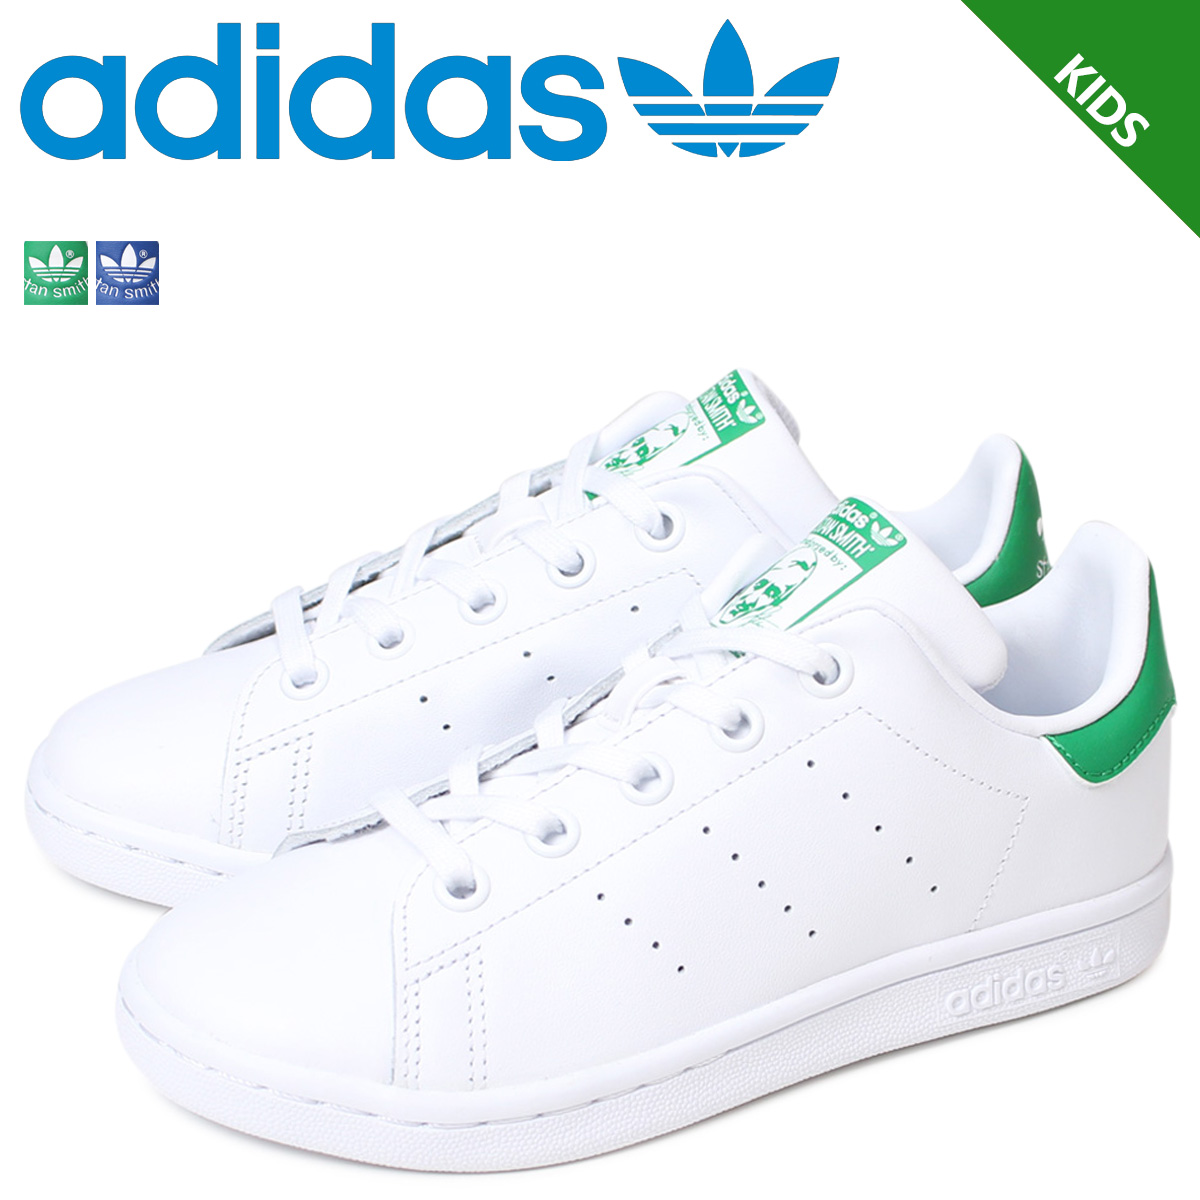 adidas Originals Stan Smith kids sneakers Adidas originals STAN SMITH EL C BA8375 BA0694 shoes white [172]